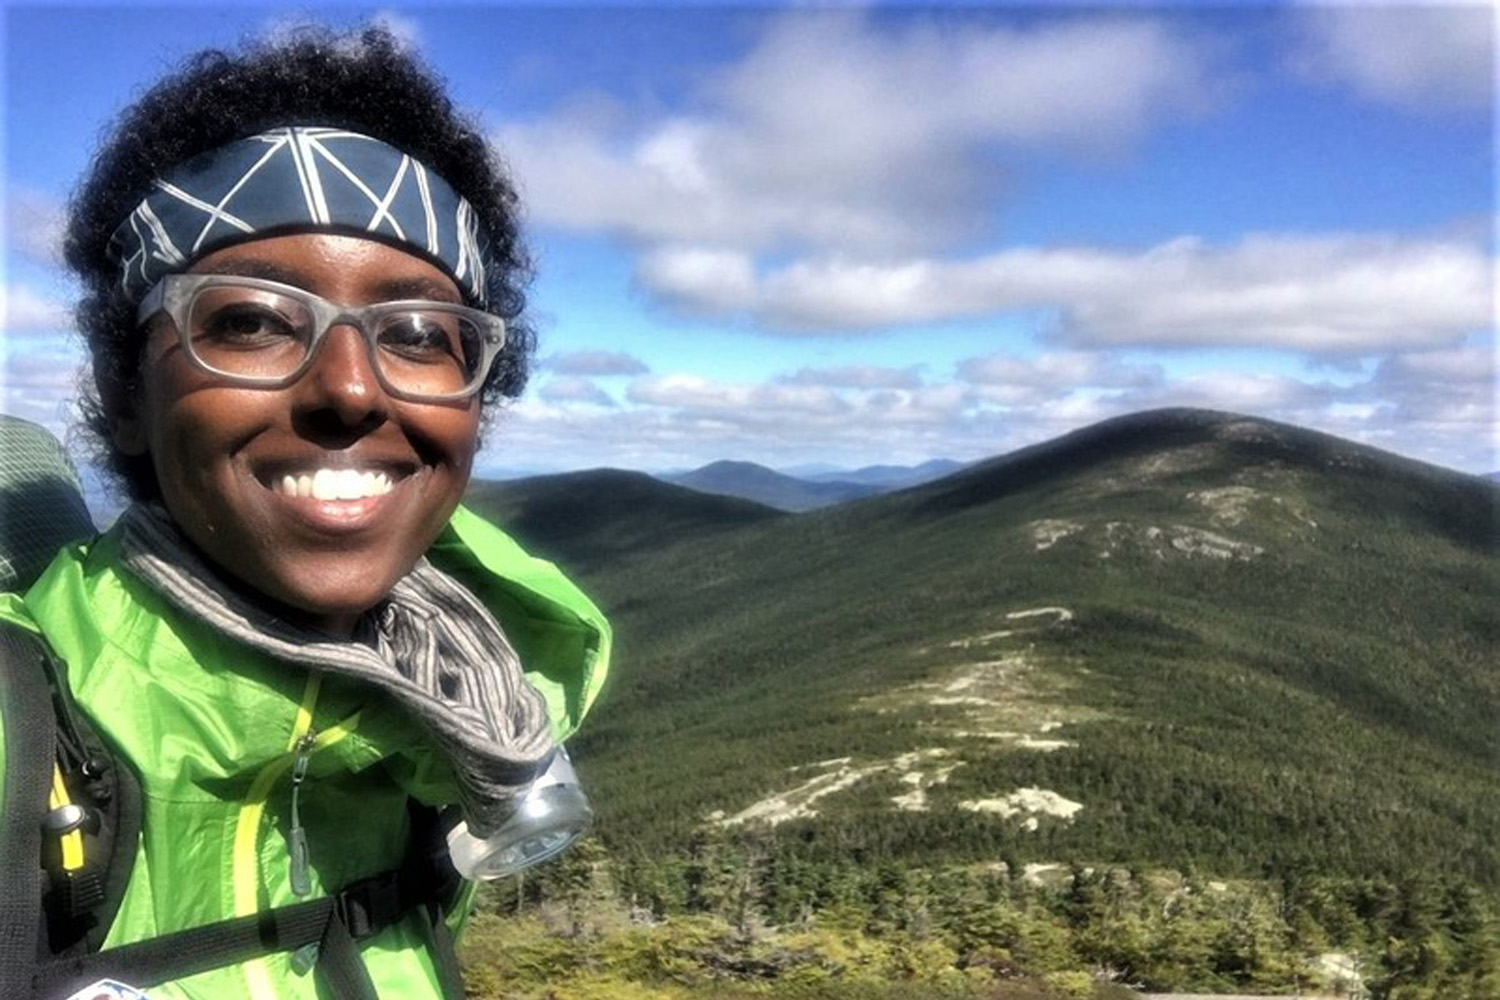 Rahawa Haile on the Appalachian Trail. (Courtesy Rahawa Haile)